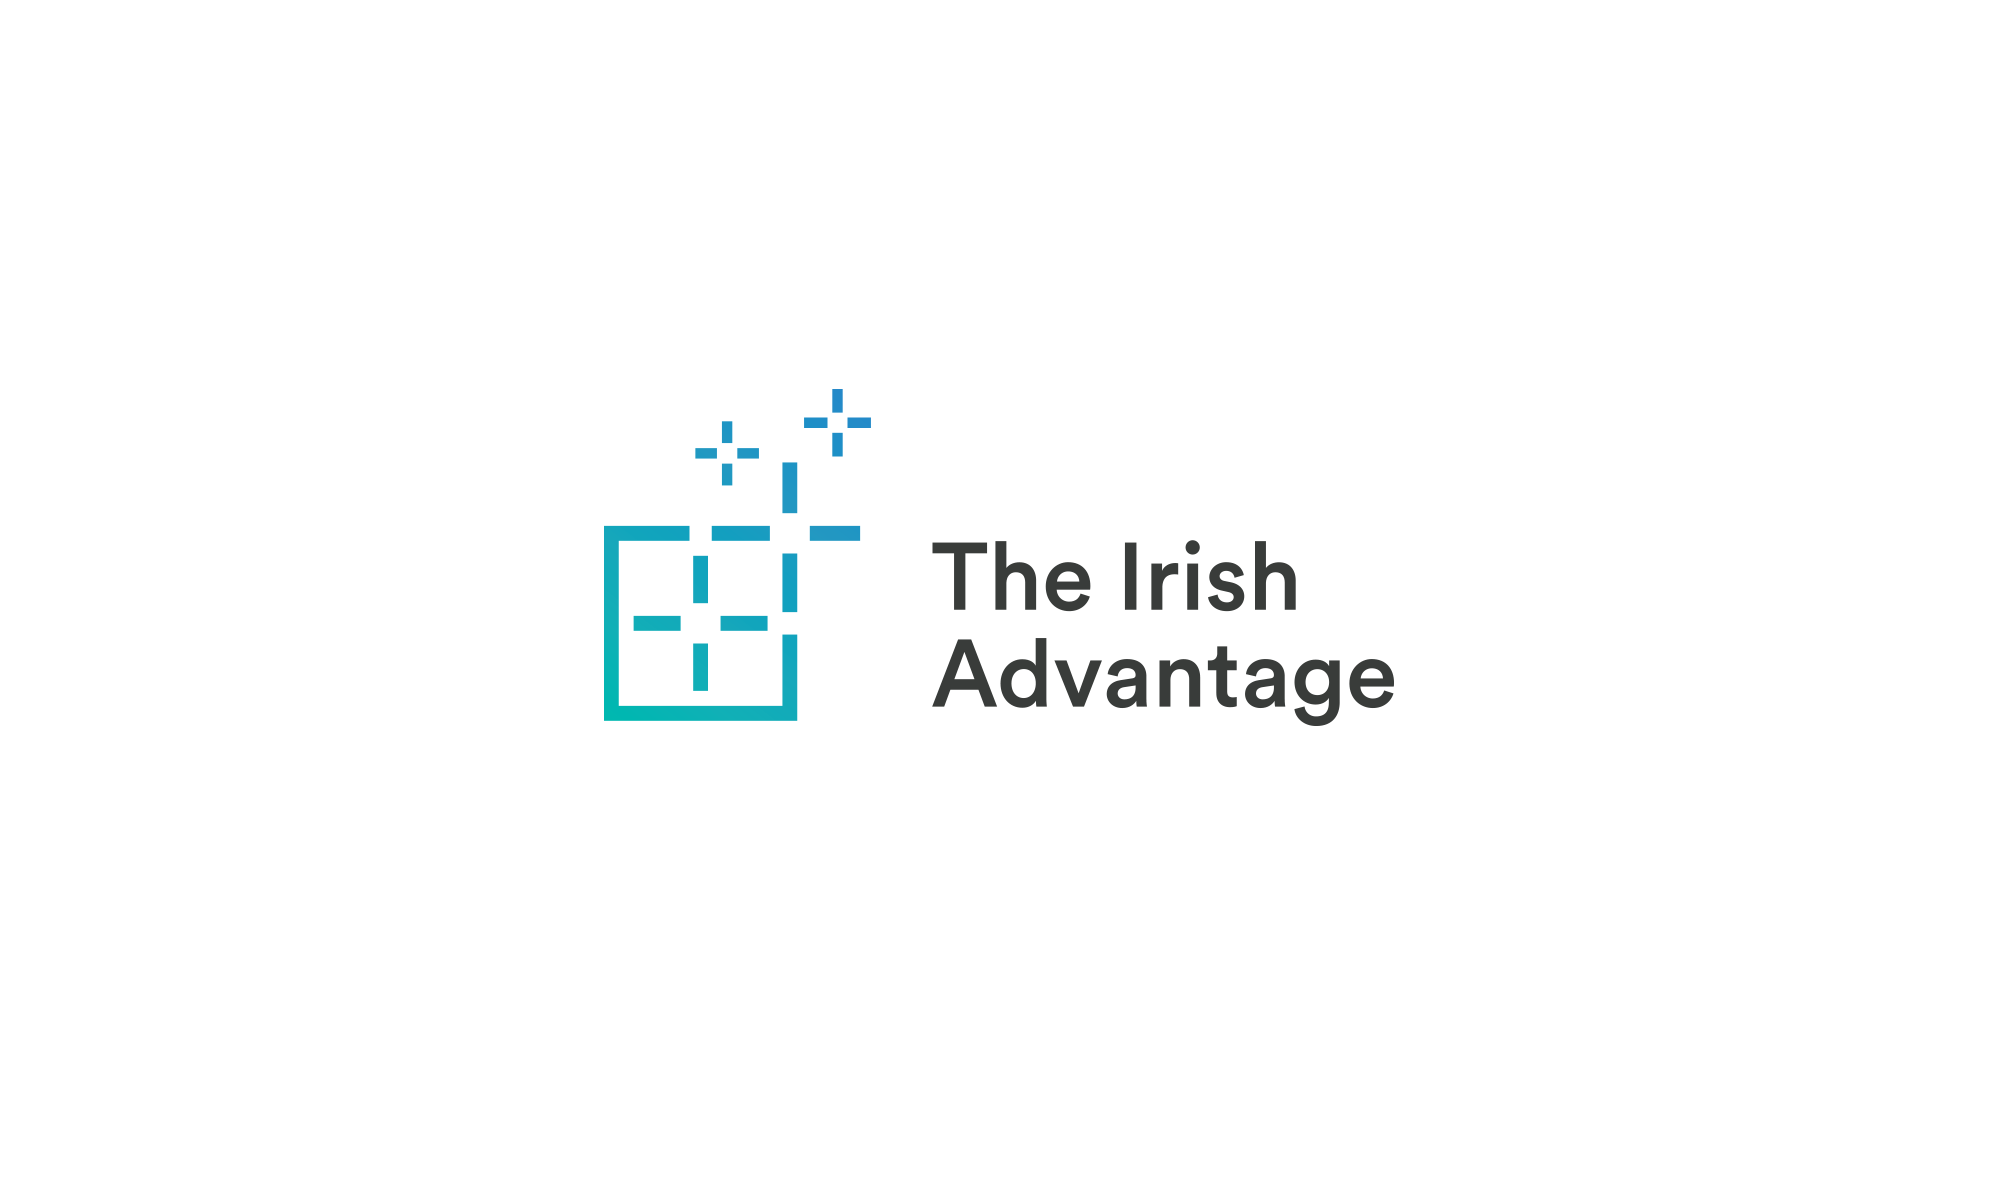 Cover image: The Irish Advantage